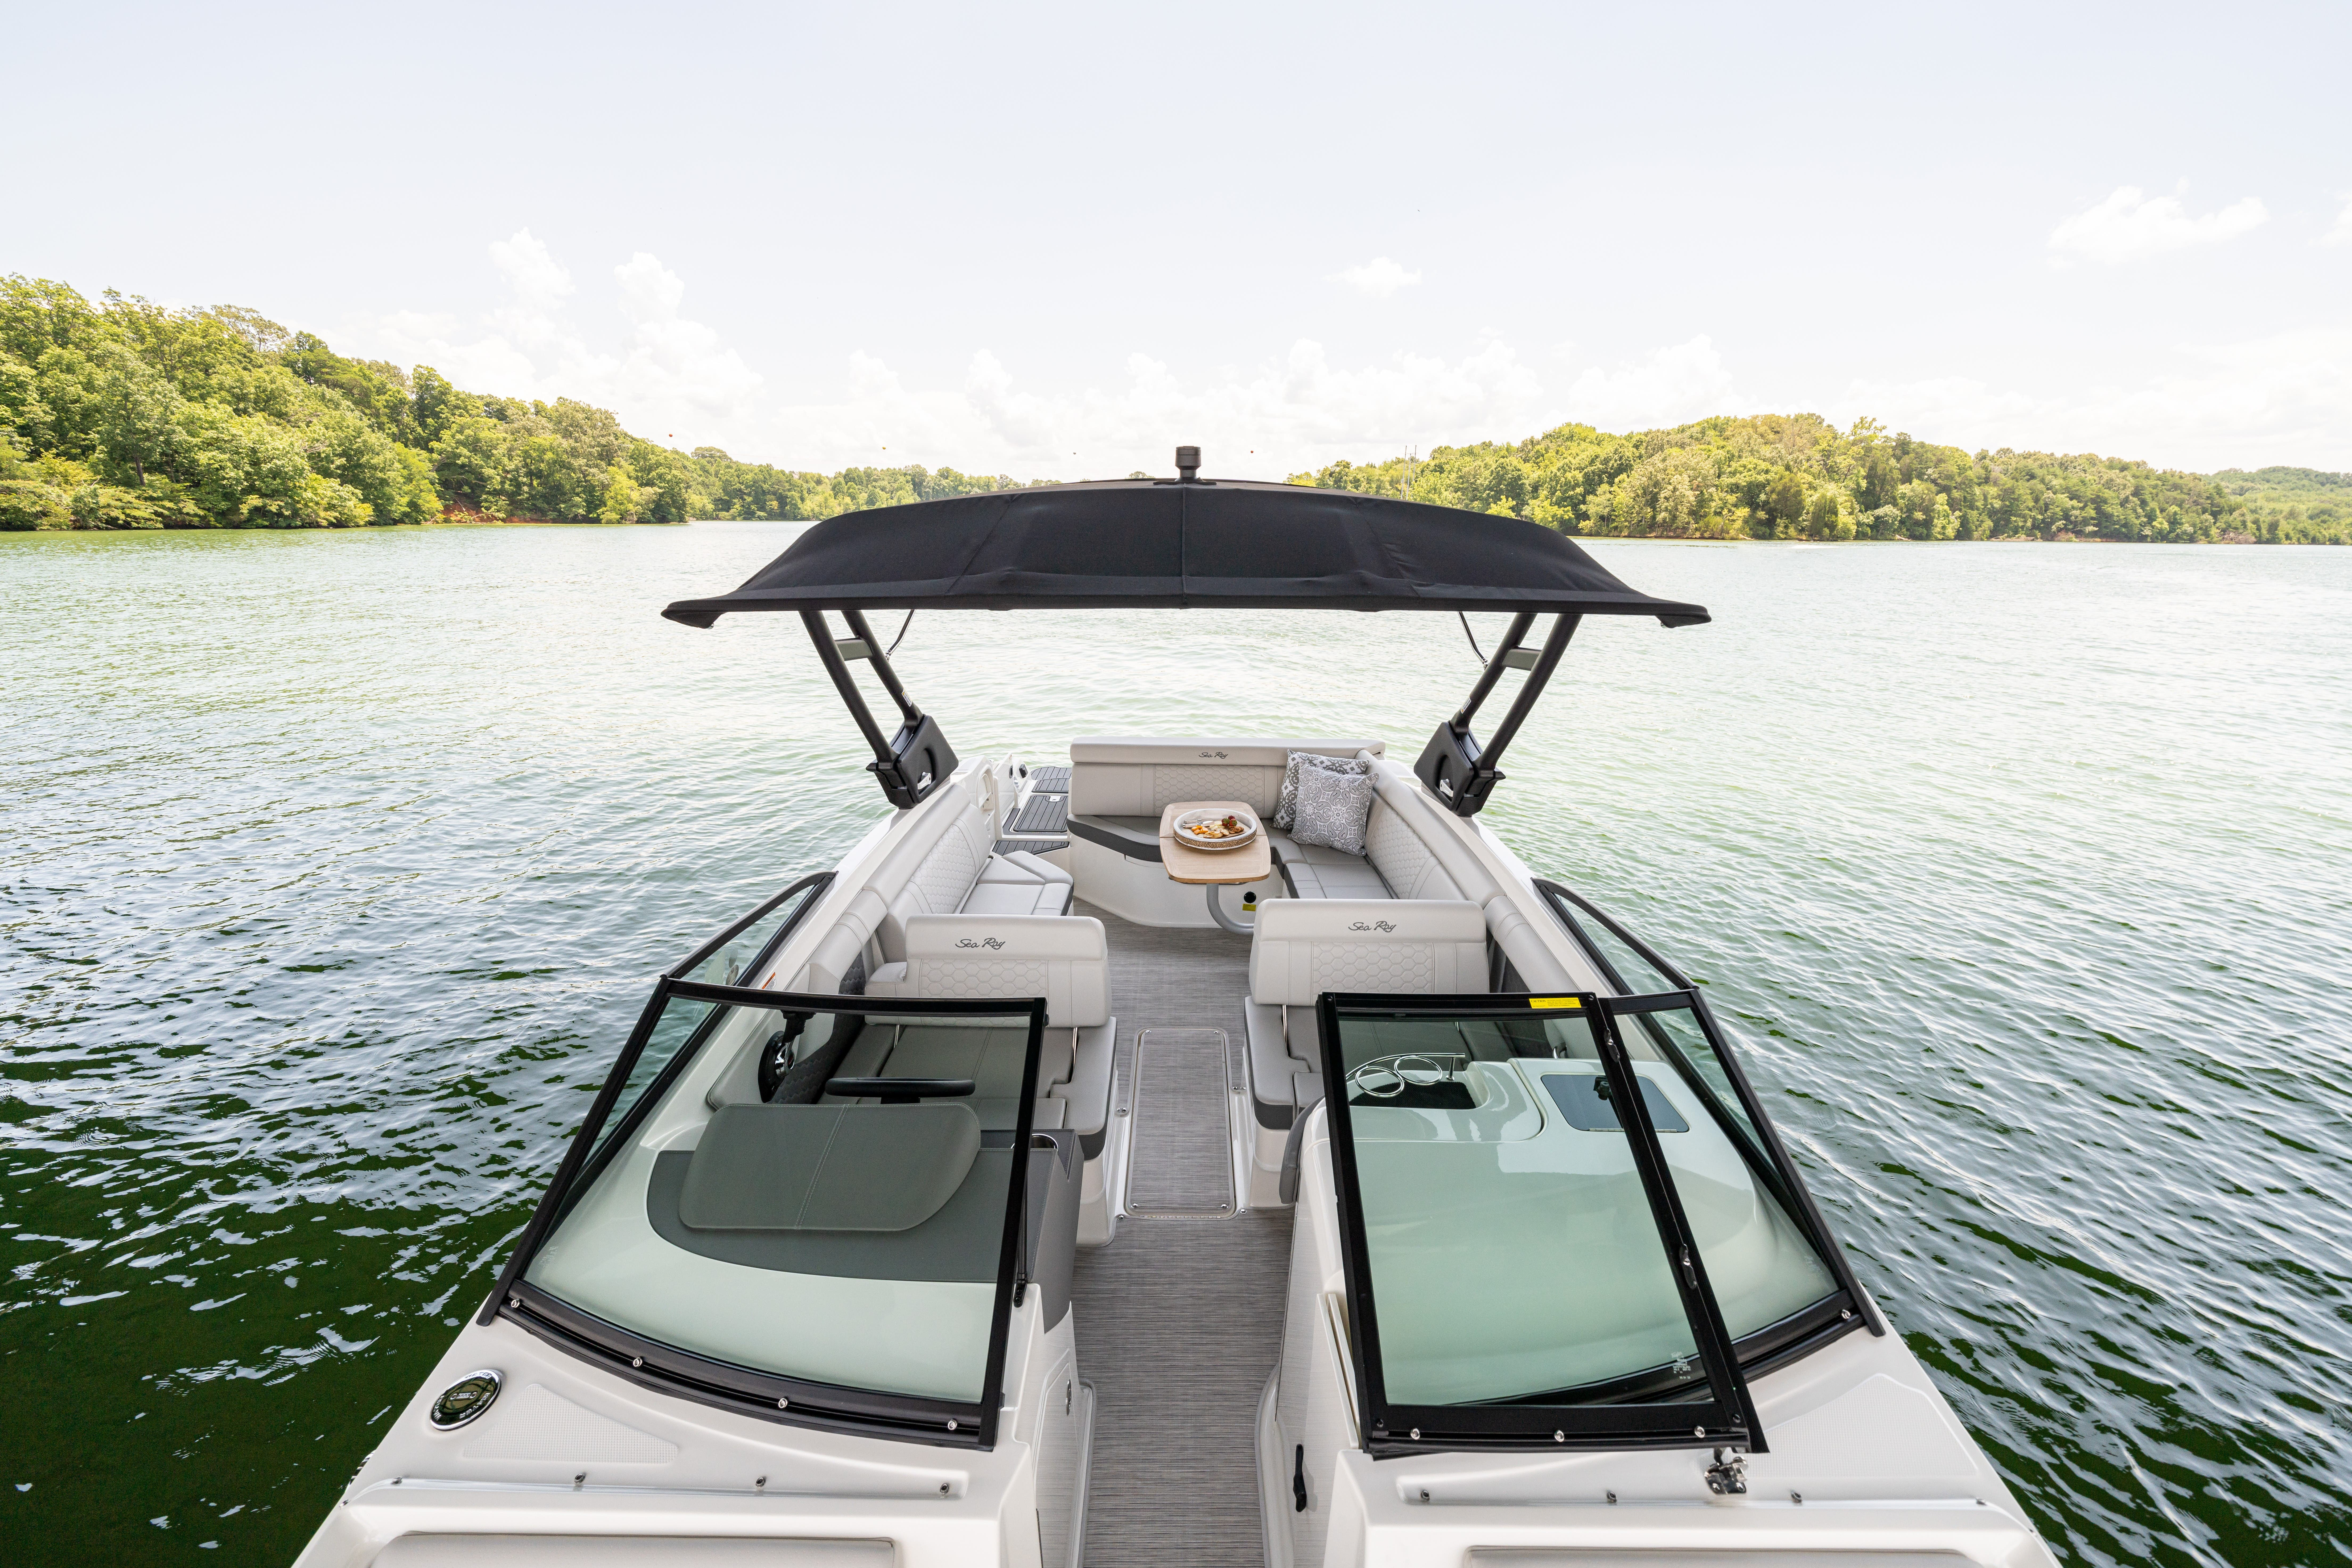 2022 Sea Ray boat for sale, model of the boat is 270sdx & Image # 5 of 6